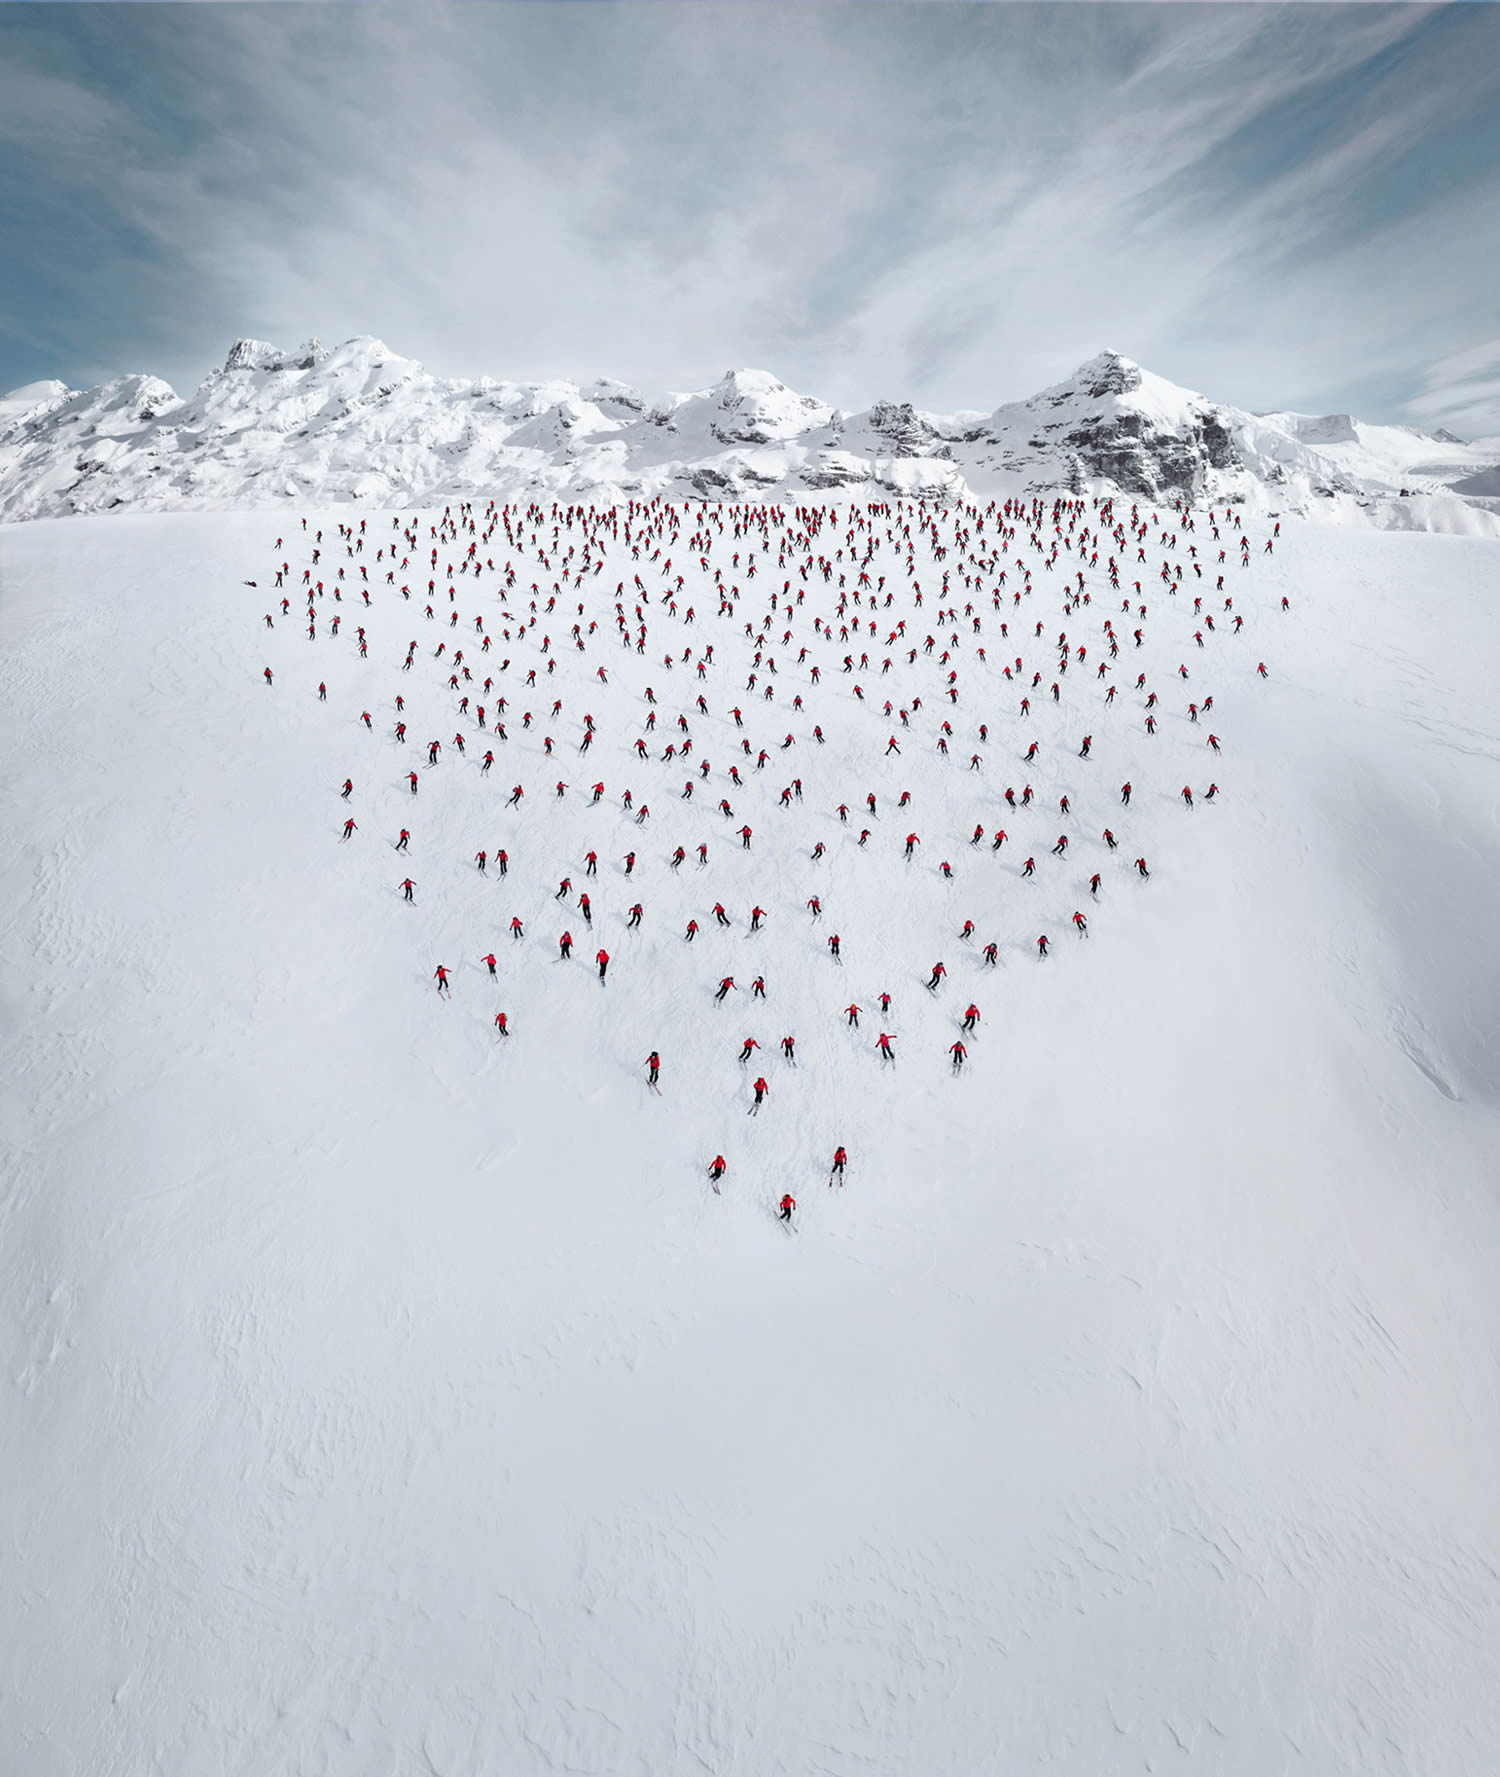 red clothed men on snowy mountain, Robert Bösch mammut